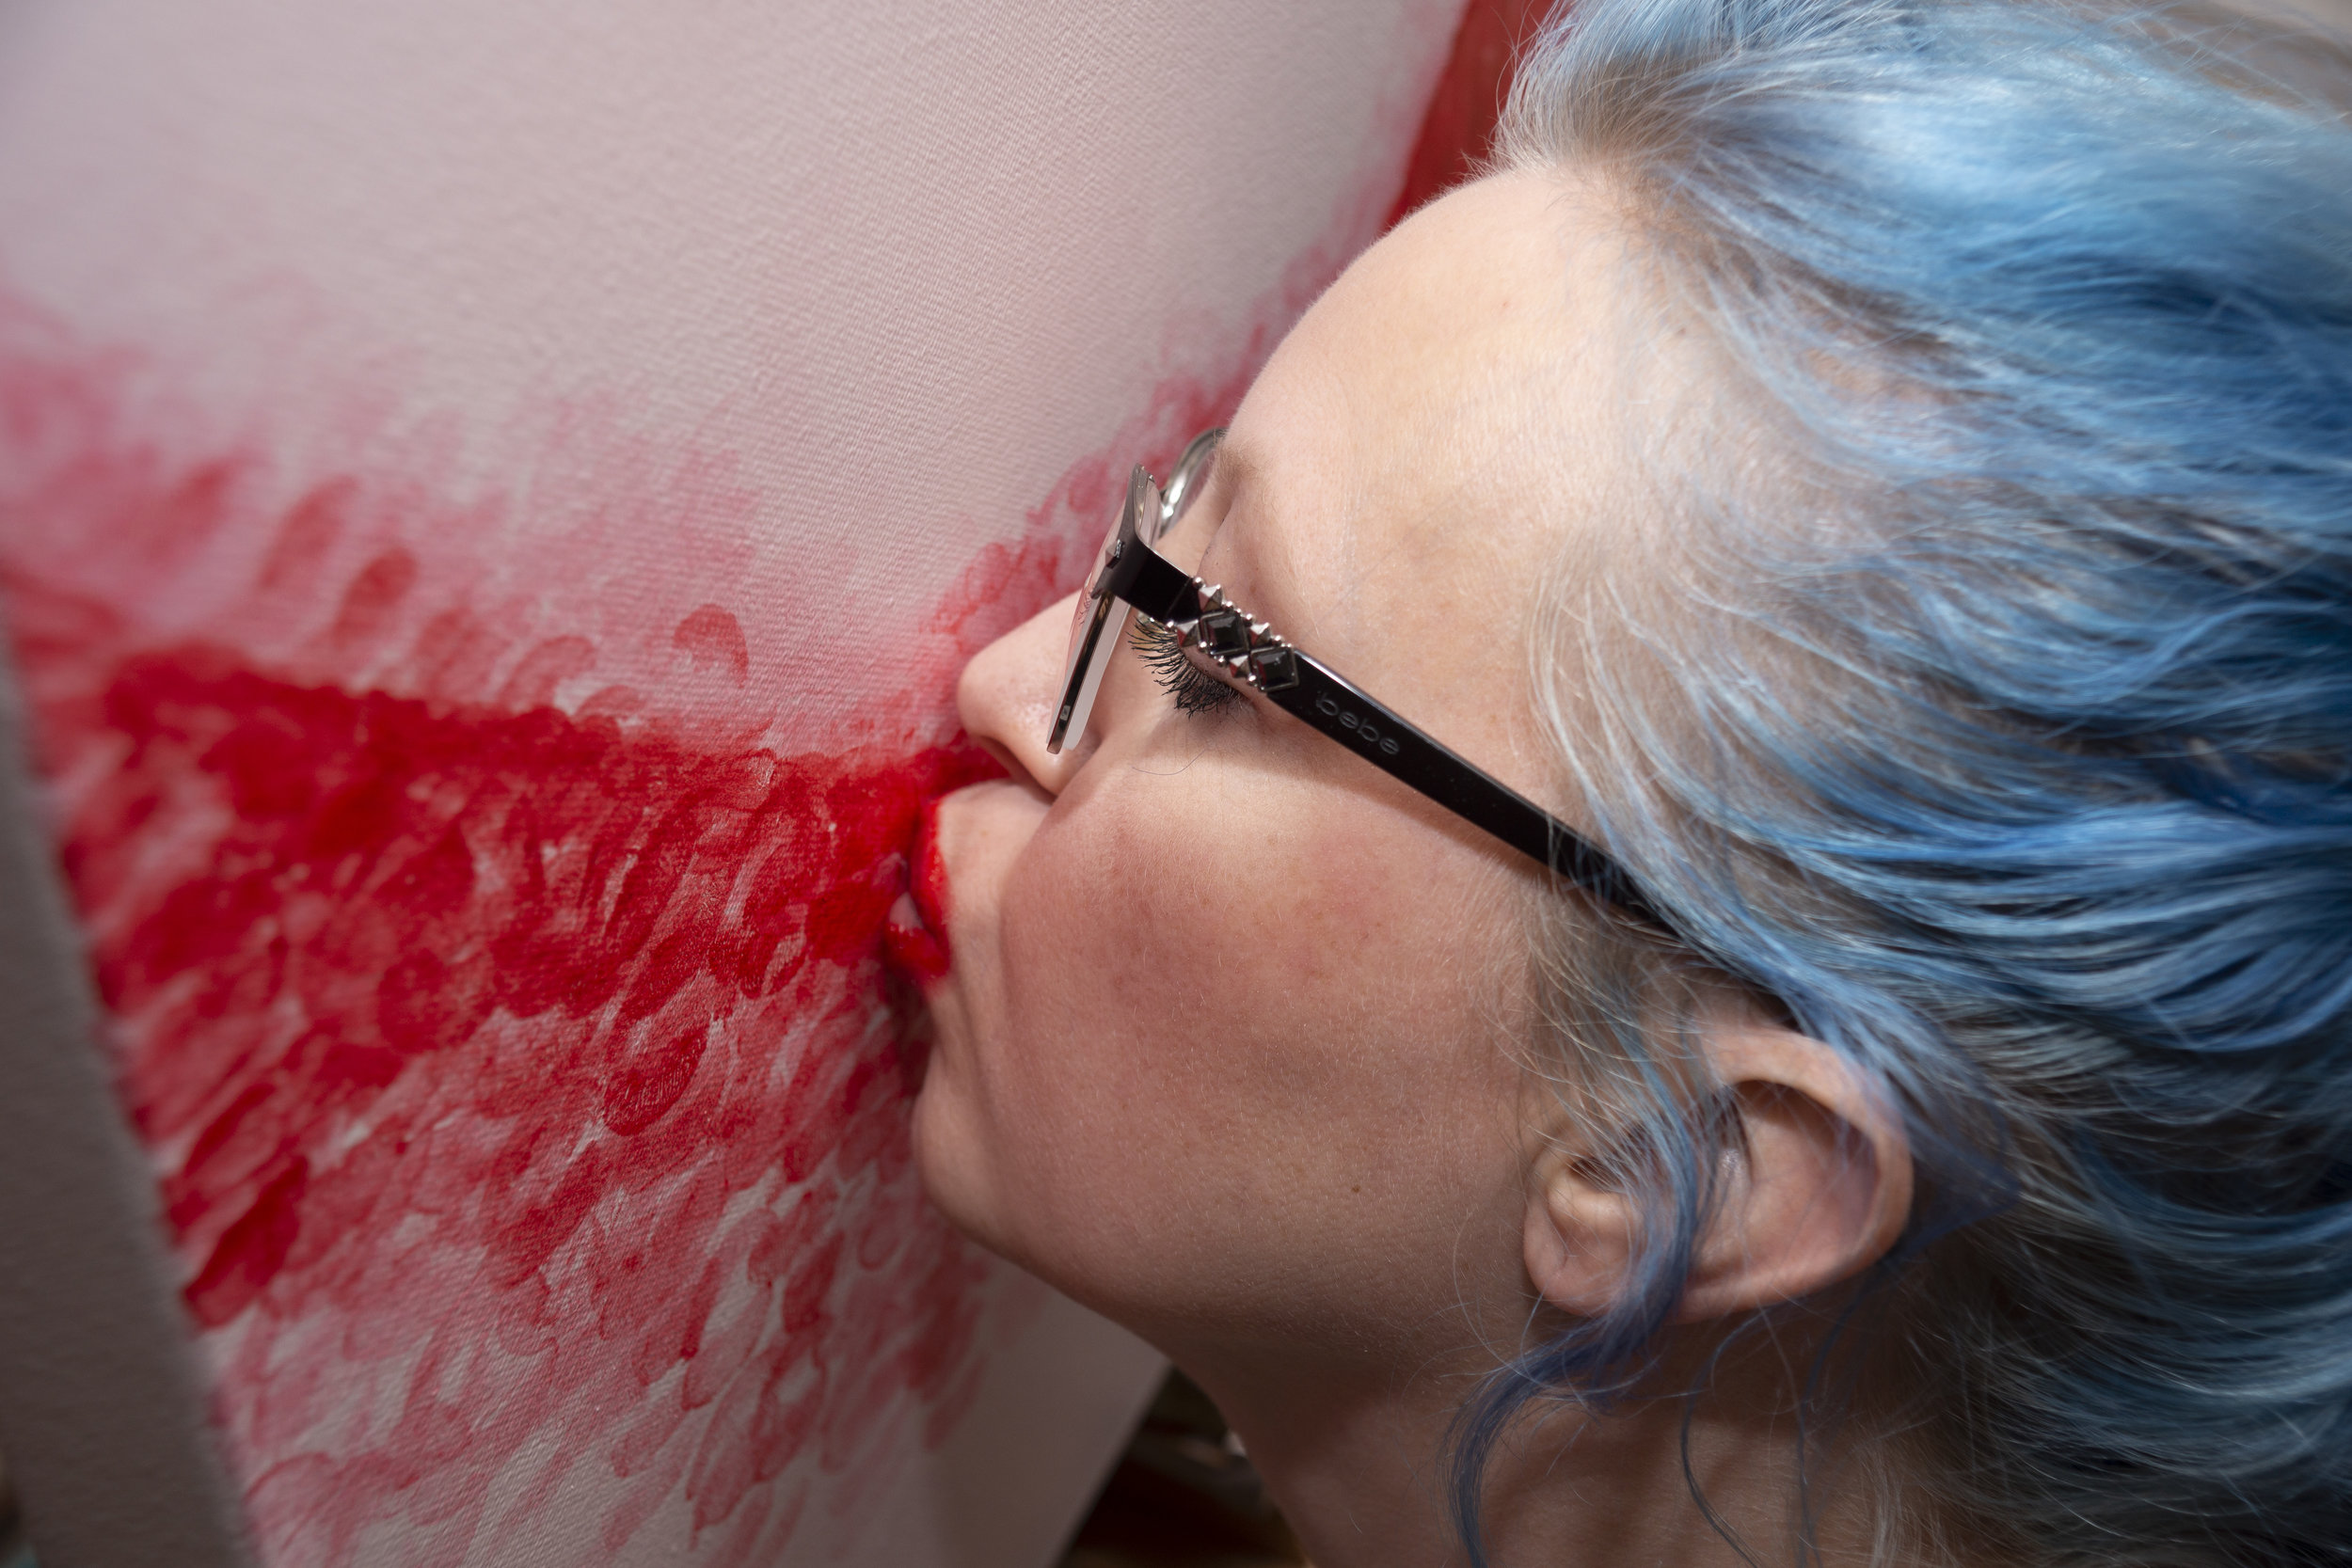 The process - Artwork is created by applying lipstick and kissing the canvas. If a painting is described as lipstick on canvas then it was completed entirely with lip prints, meaning only the artists lips touched the canvas, no brushes were used. Some pieces have backgrounds that have been painted using a brush and acrylics paint, these are indicated as such in the image descriptions.